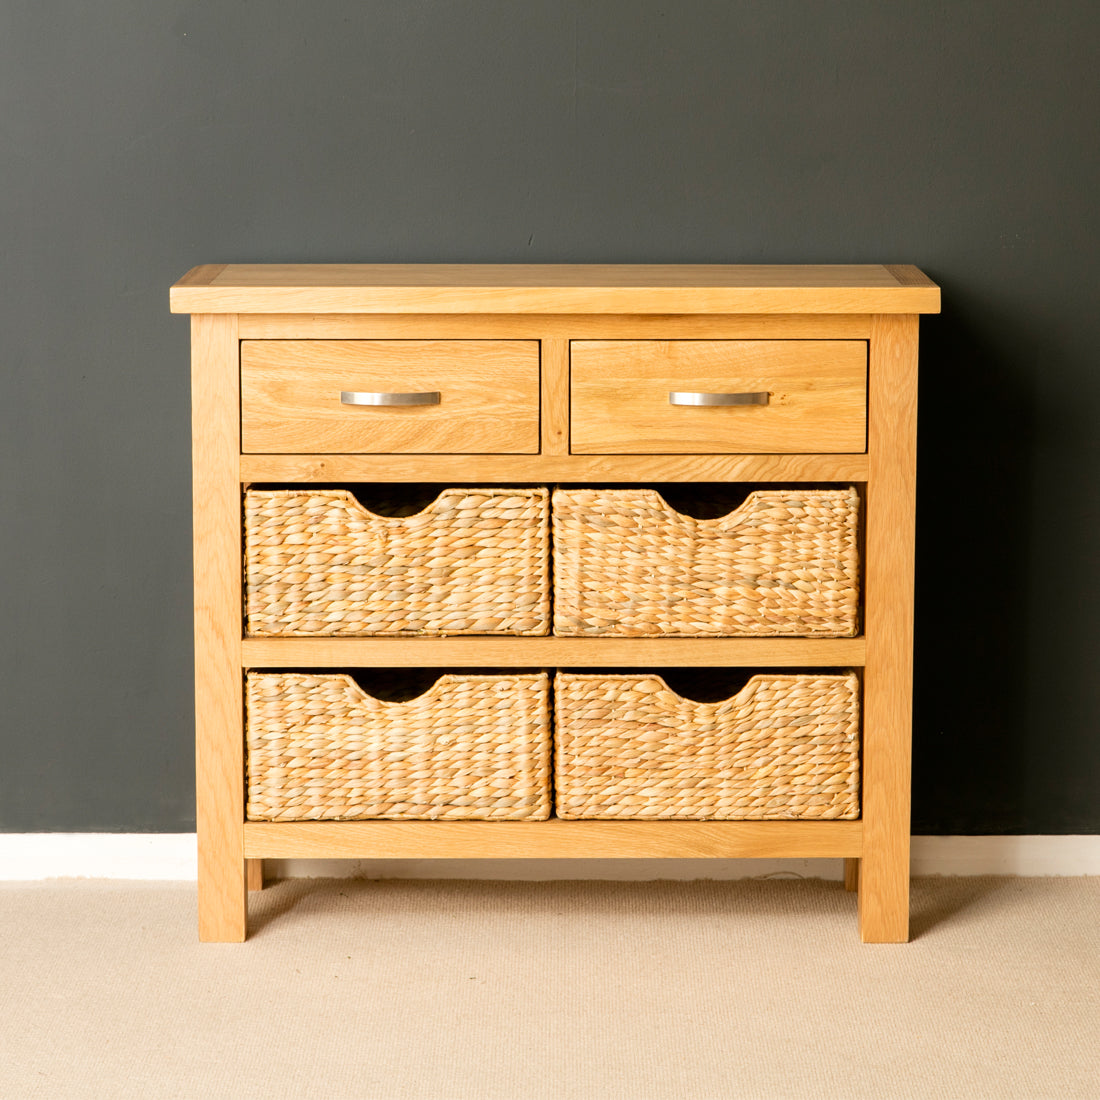 London Oak - Quality, affordable Furniture